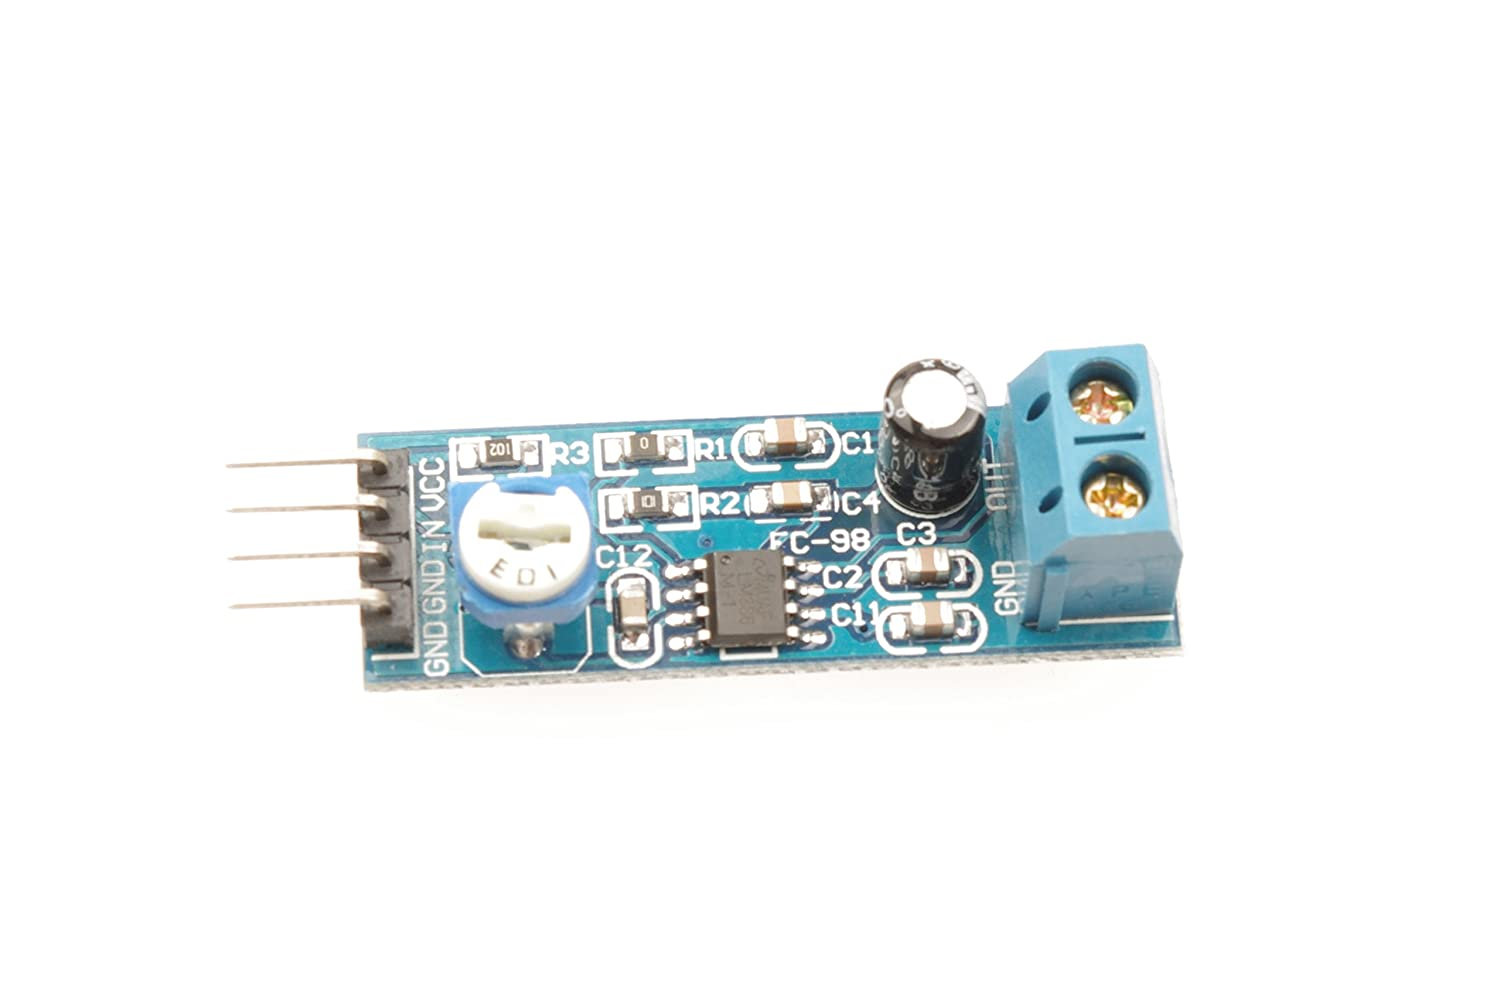 Lm386 Audio Amplifier Module 200 Times 5 12v 10k Adjustable How To Remove A 40pin Ic Dip Chip From Printed Circuit Board Resistance Car Motorbike